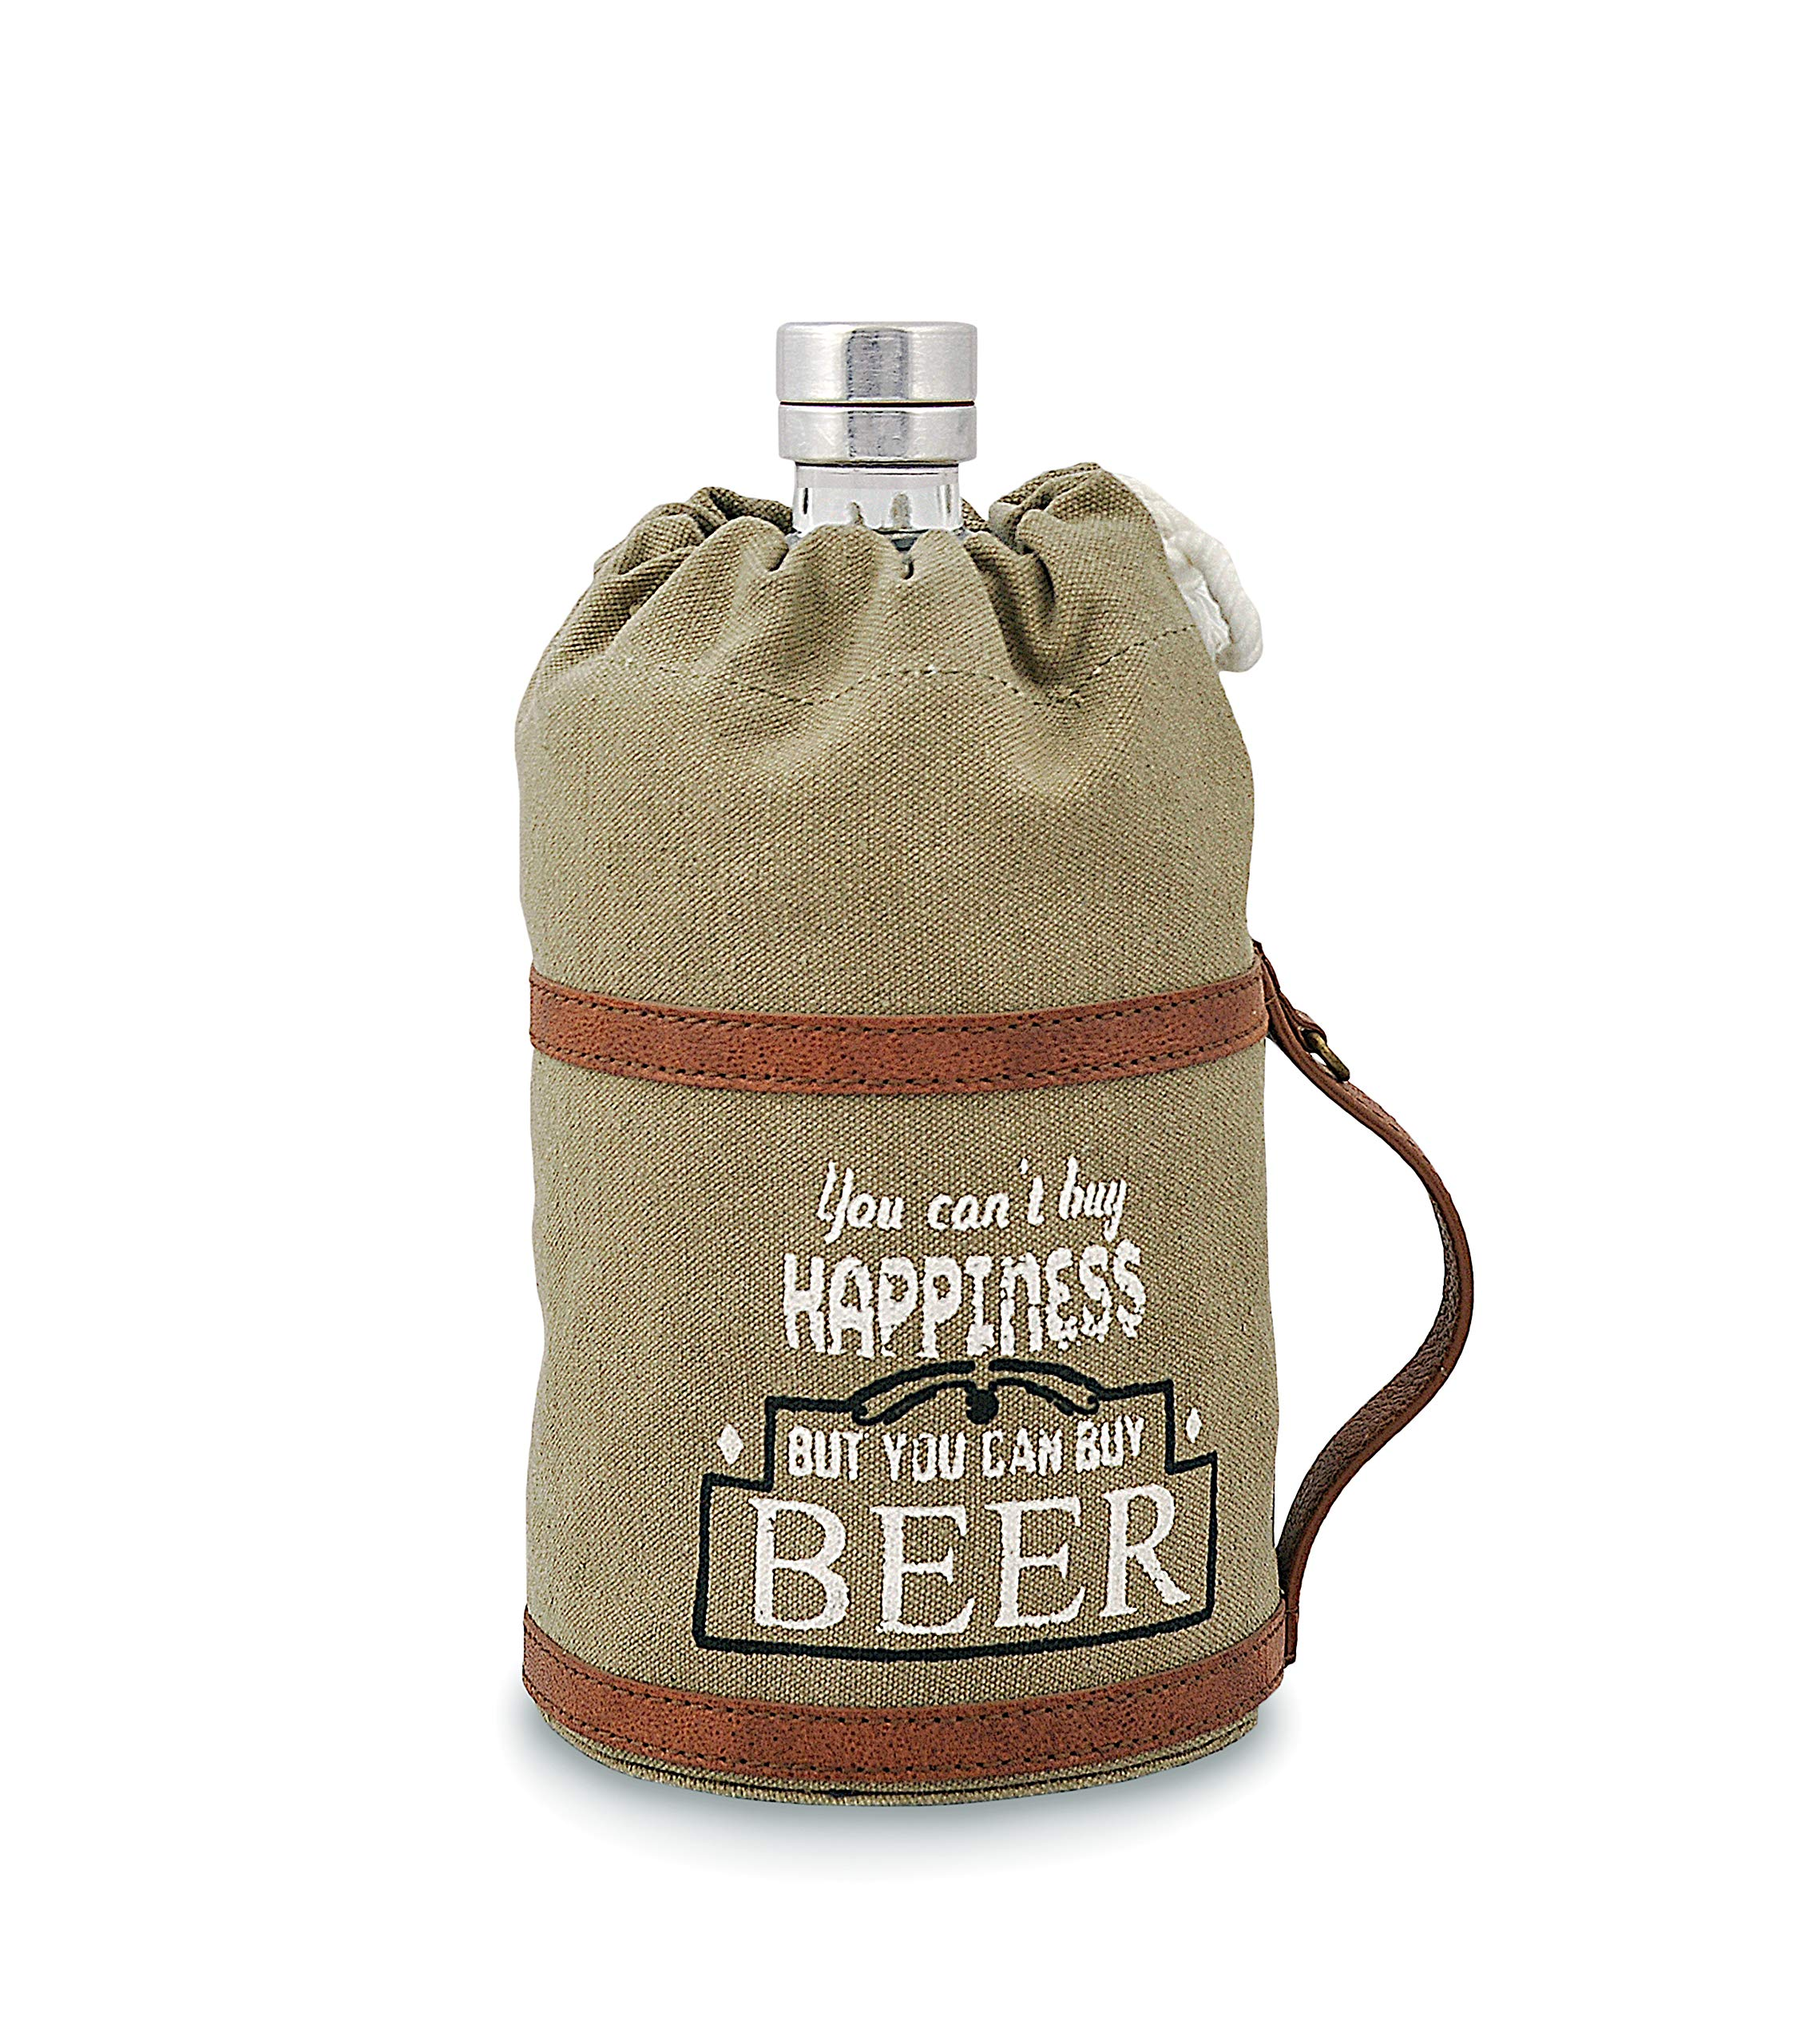 Beer Growler, Made of Canvas and Leather, Eco friendly bag, Handcrafted by Daphne (Happiness)